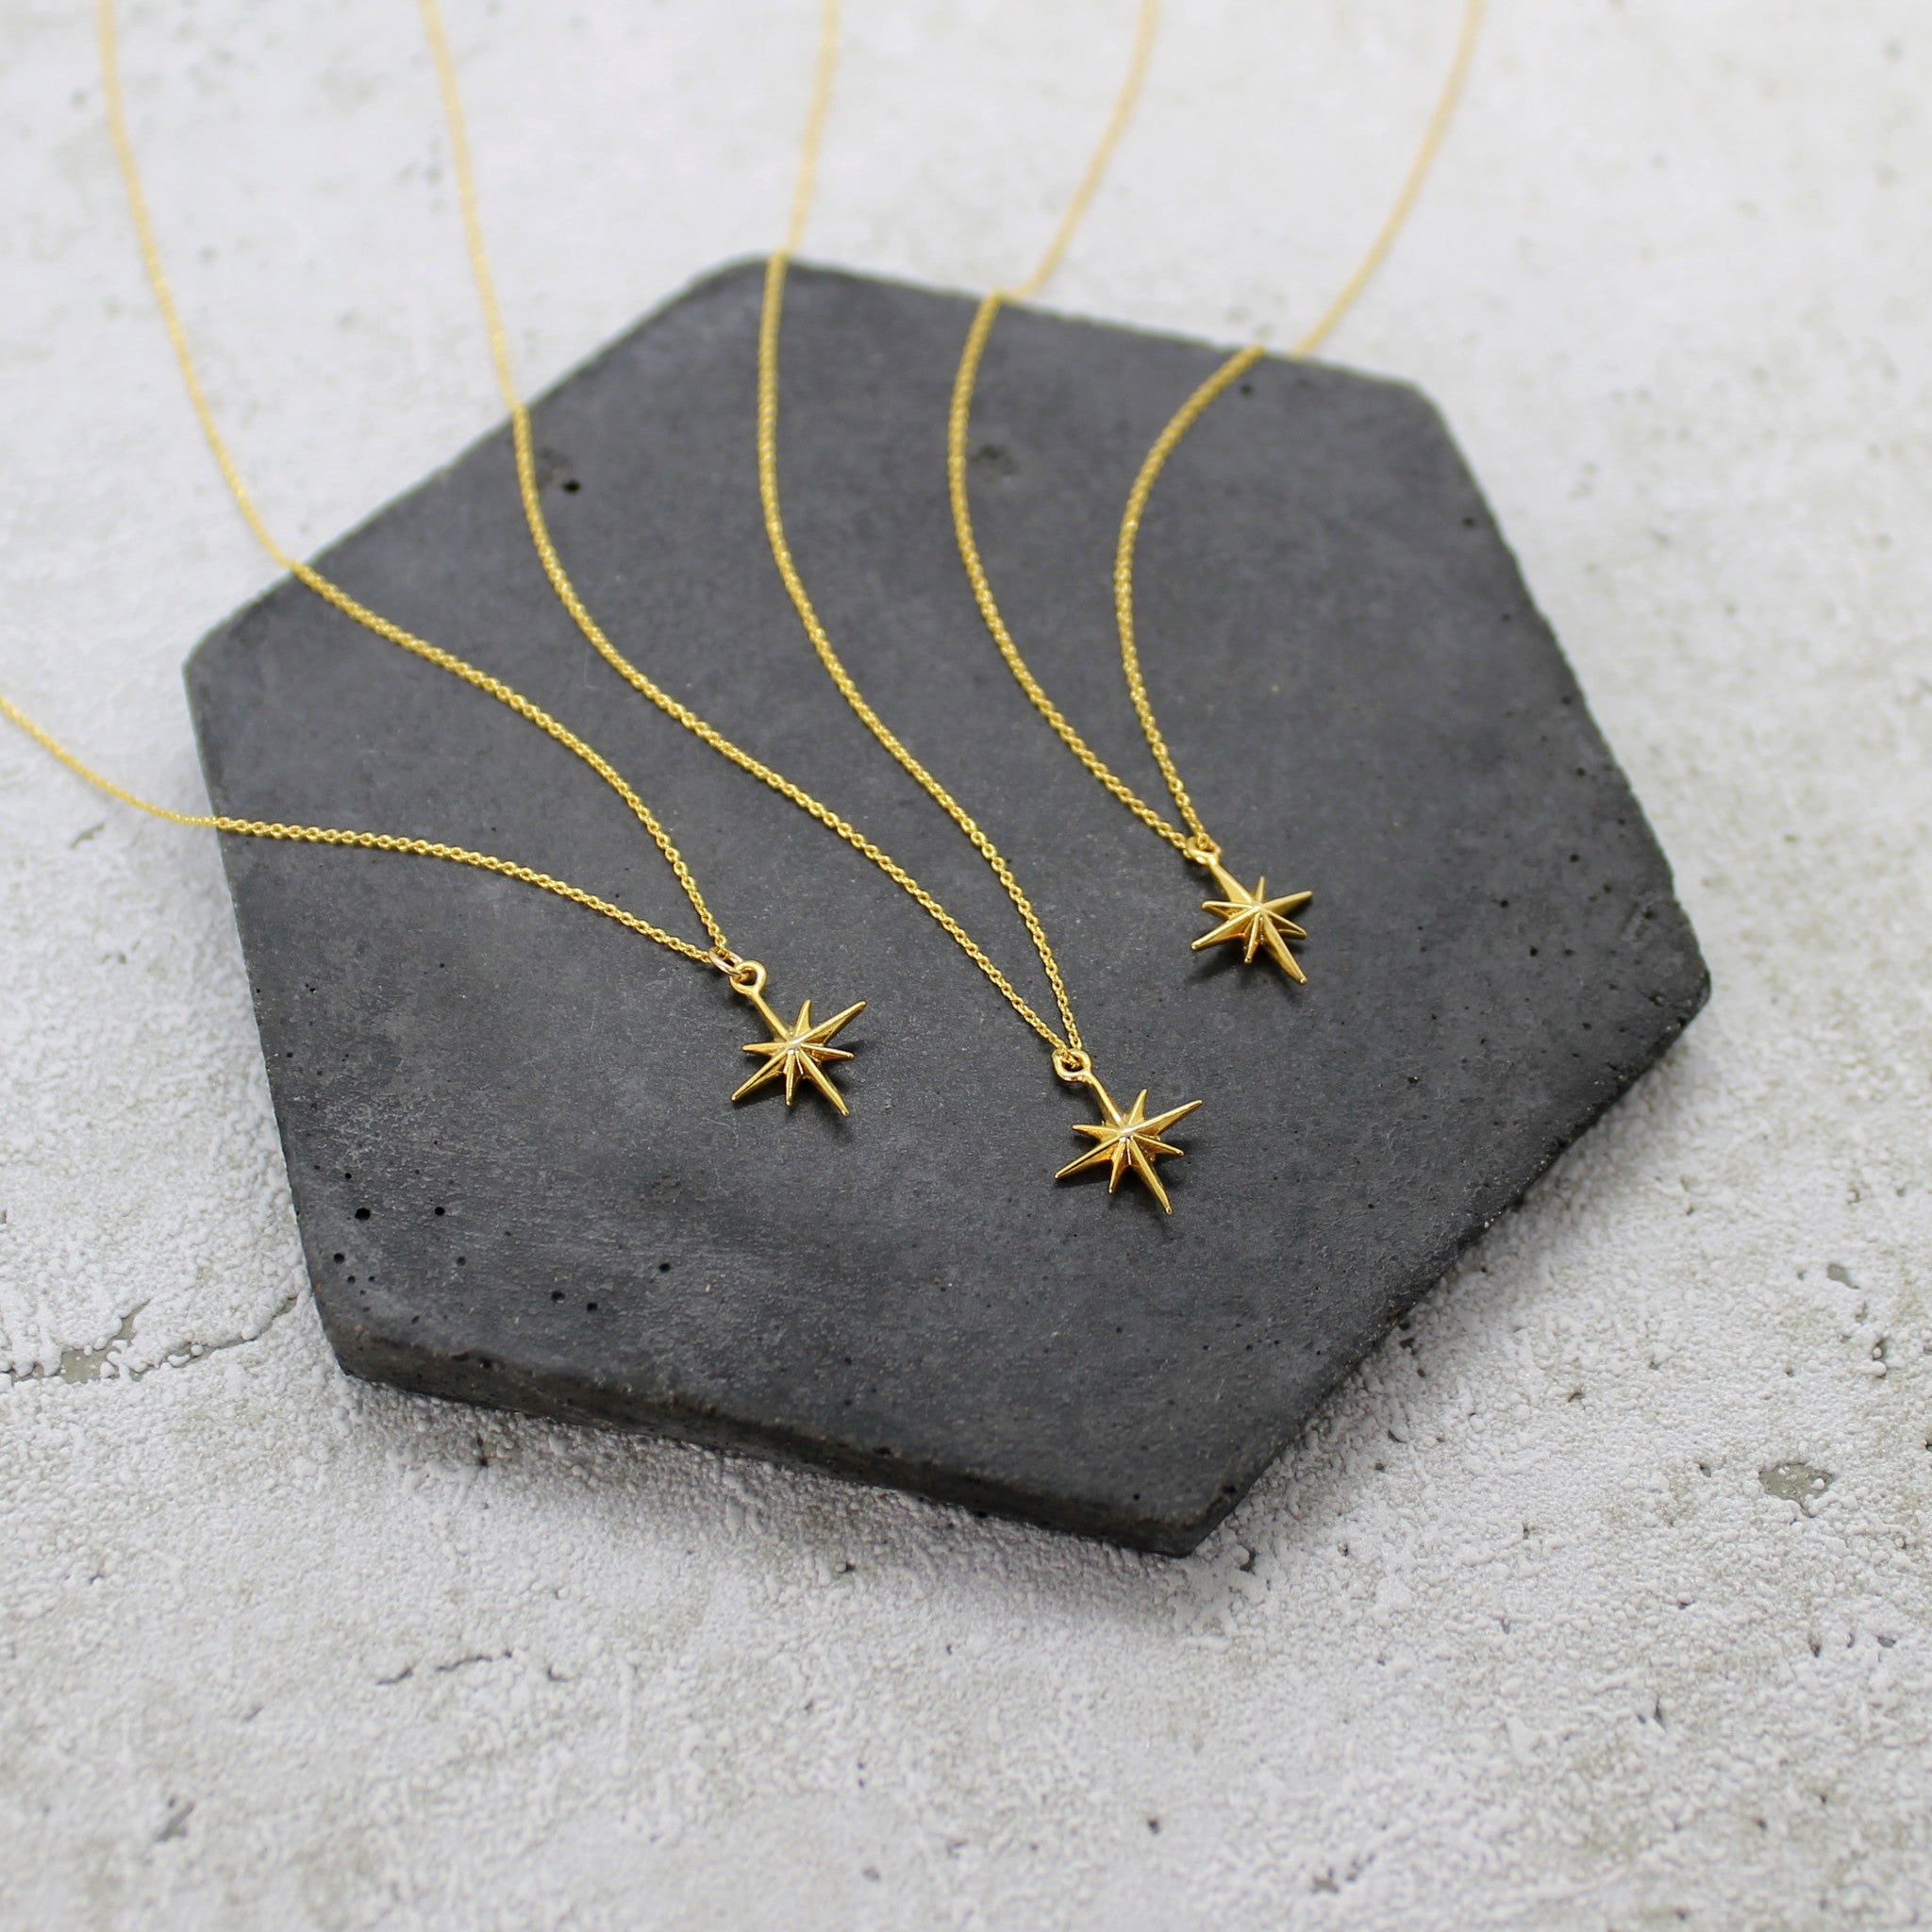 Star necklace - Mara studio